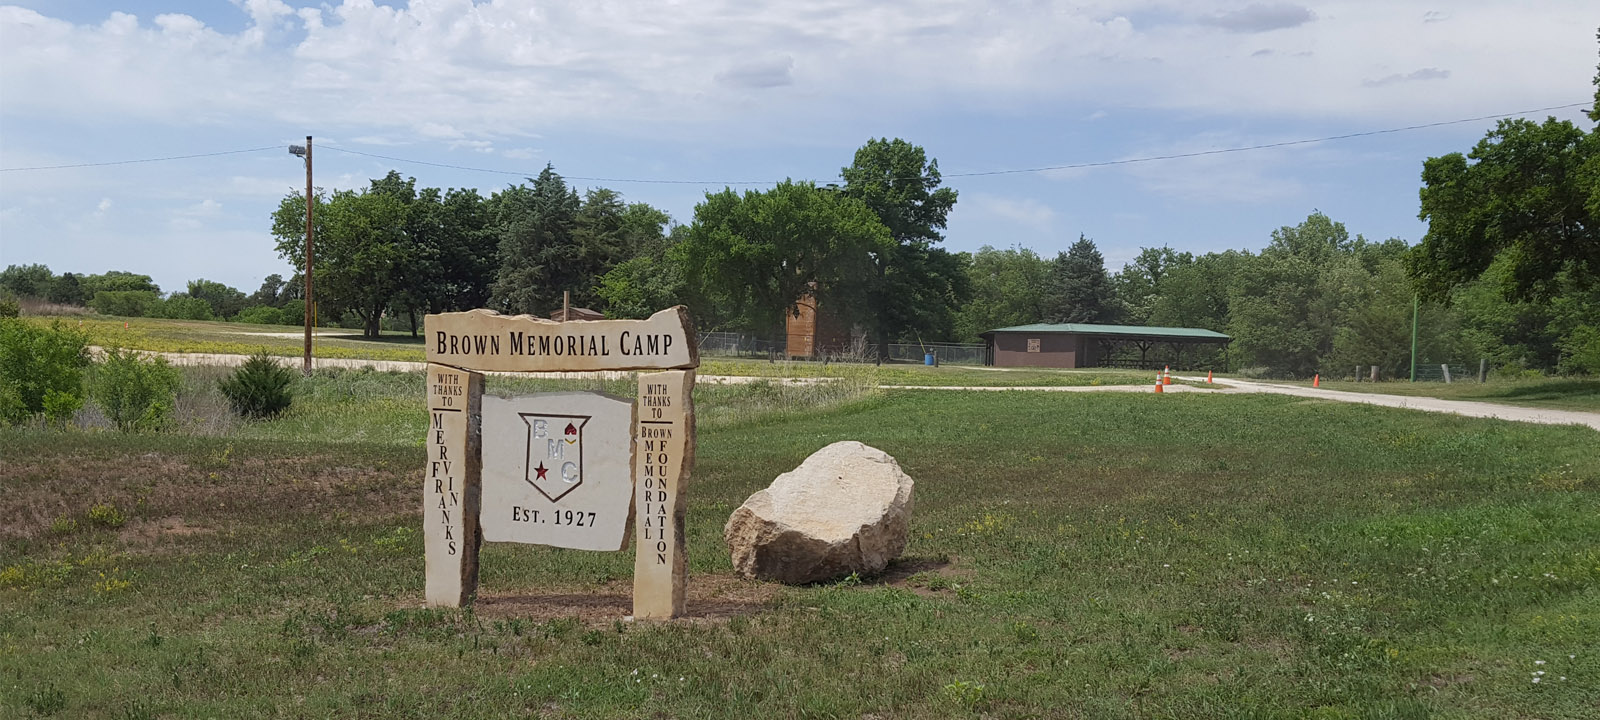 Brown Memorial Camp